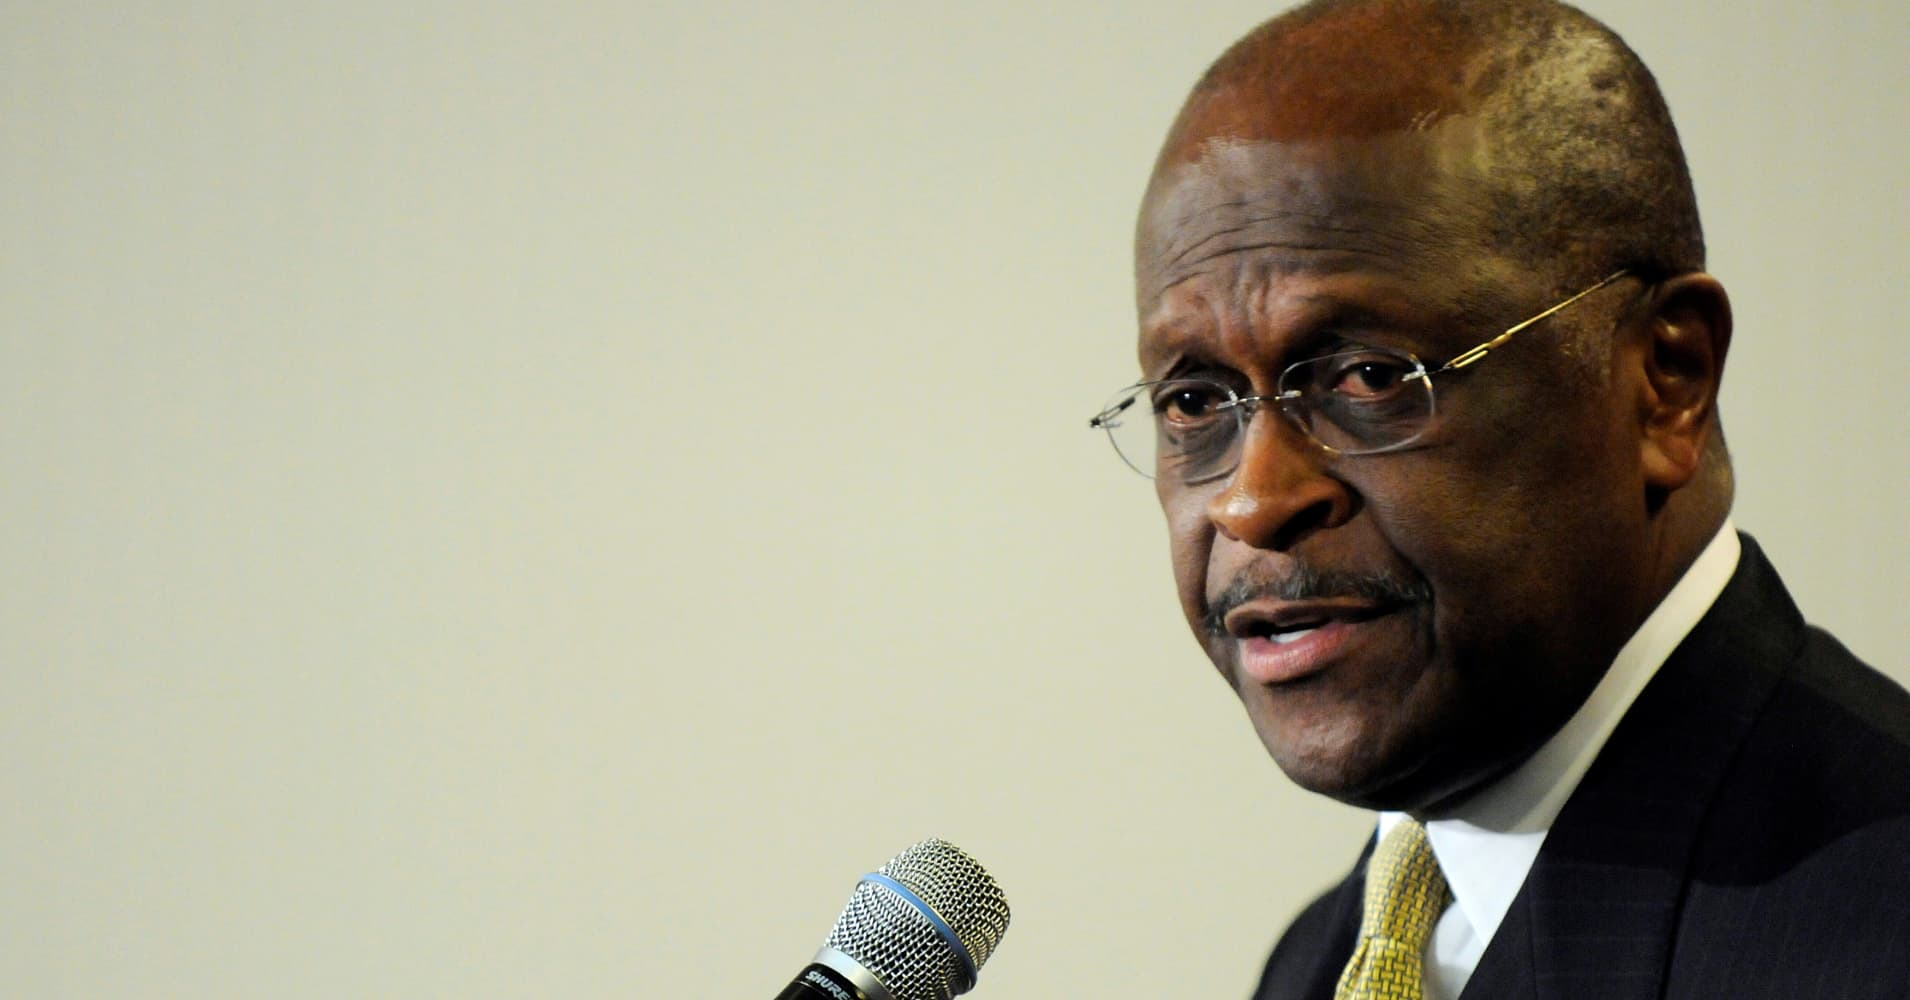 Herman Cain says he will not drop out of Fed Board consideration